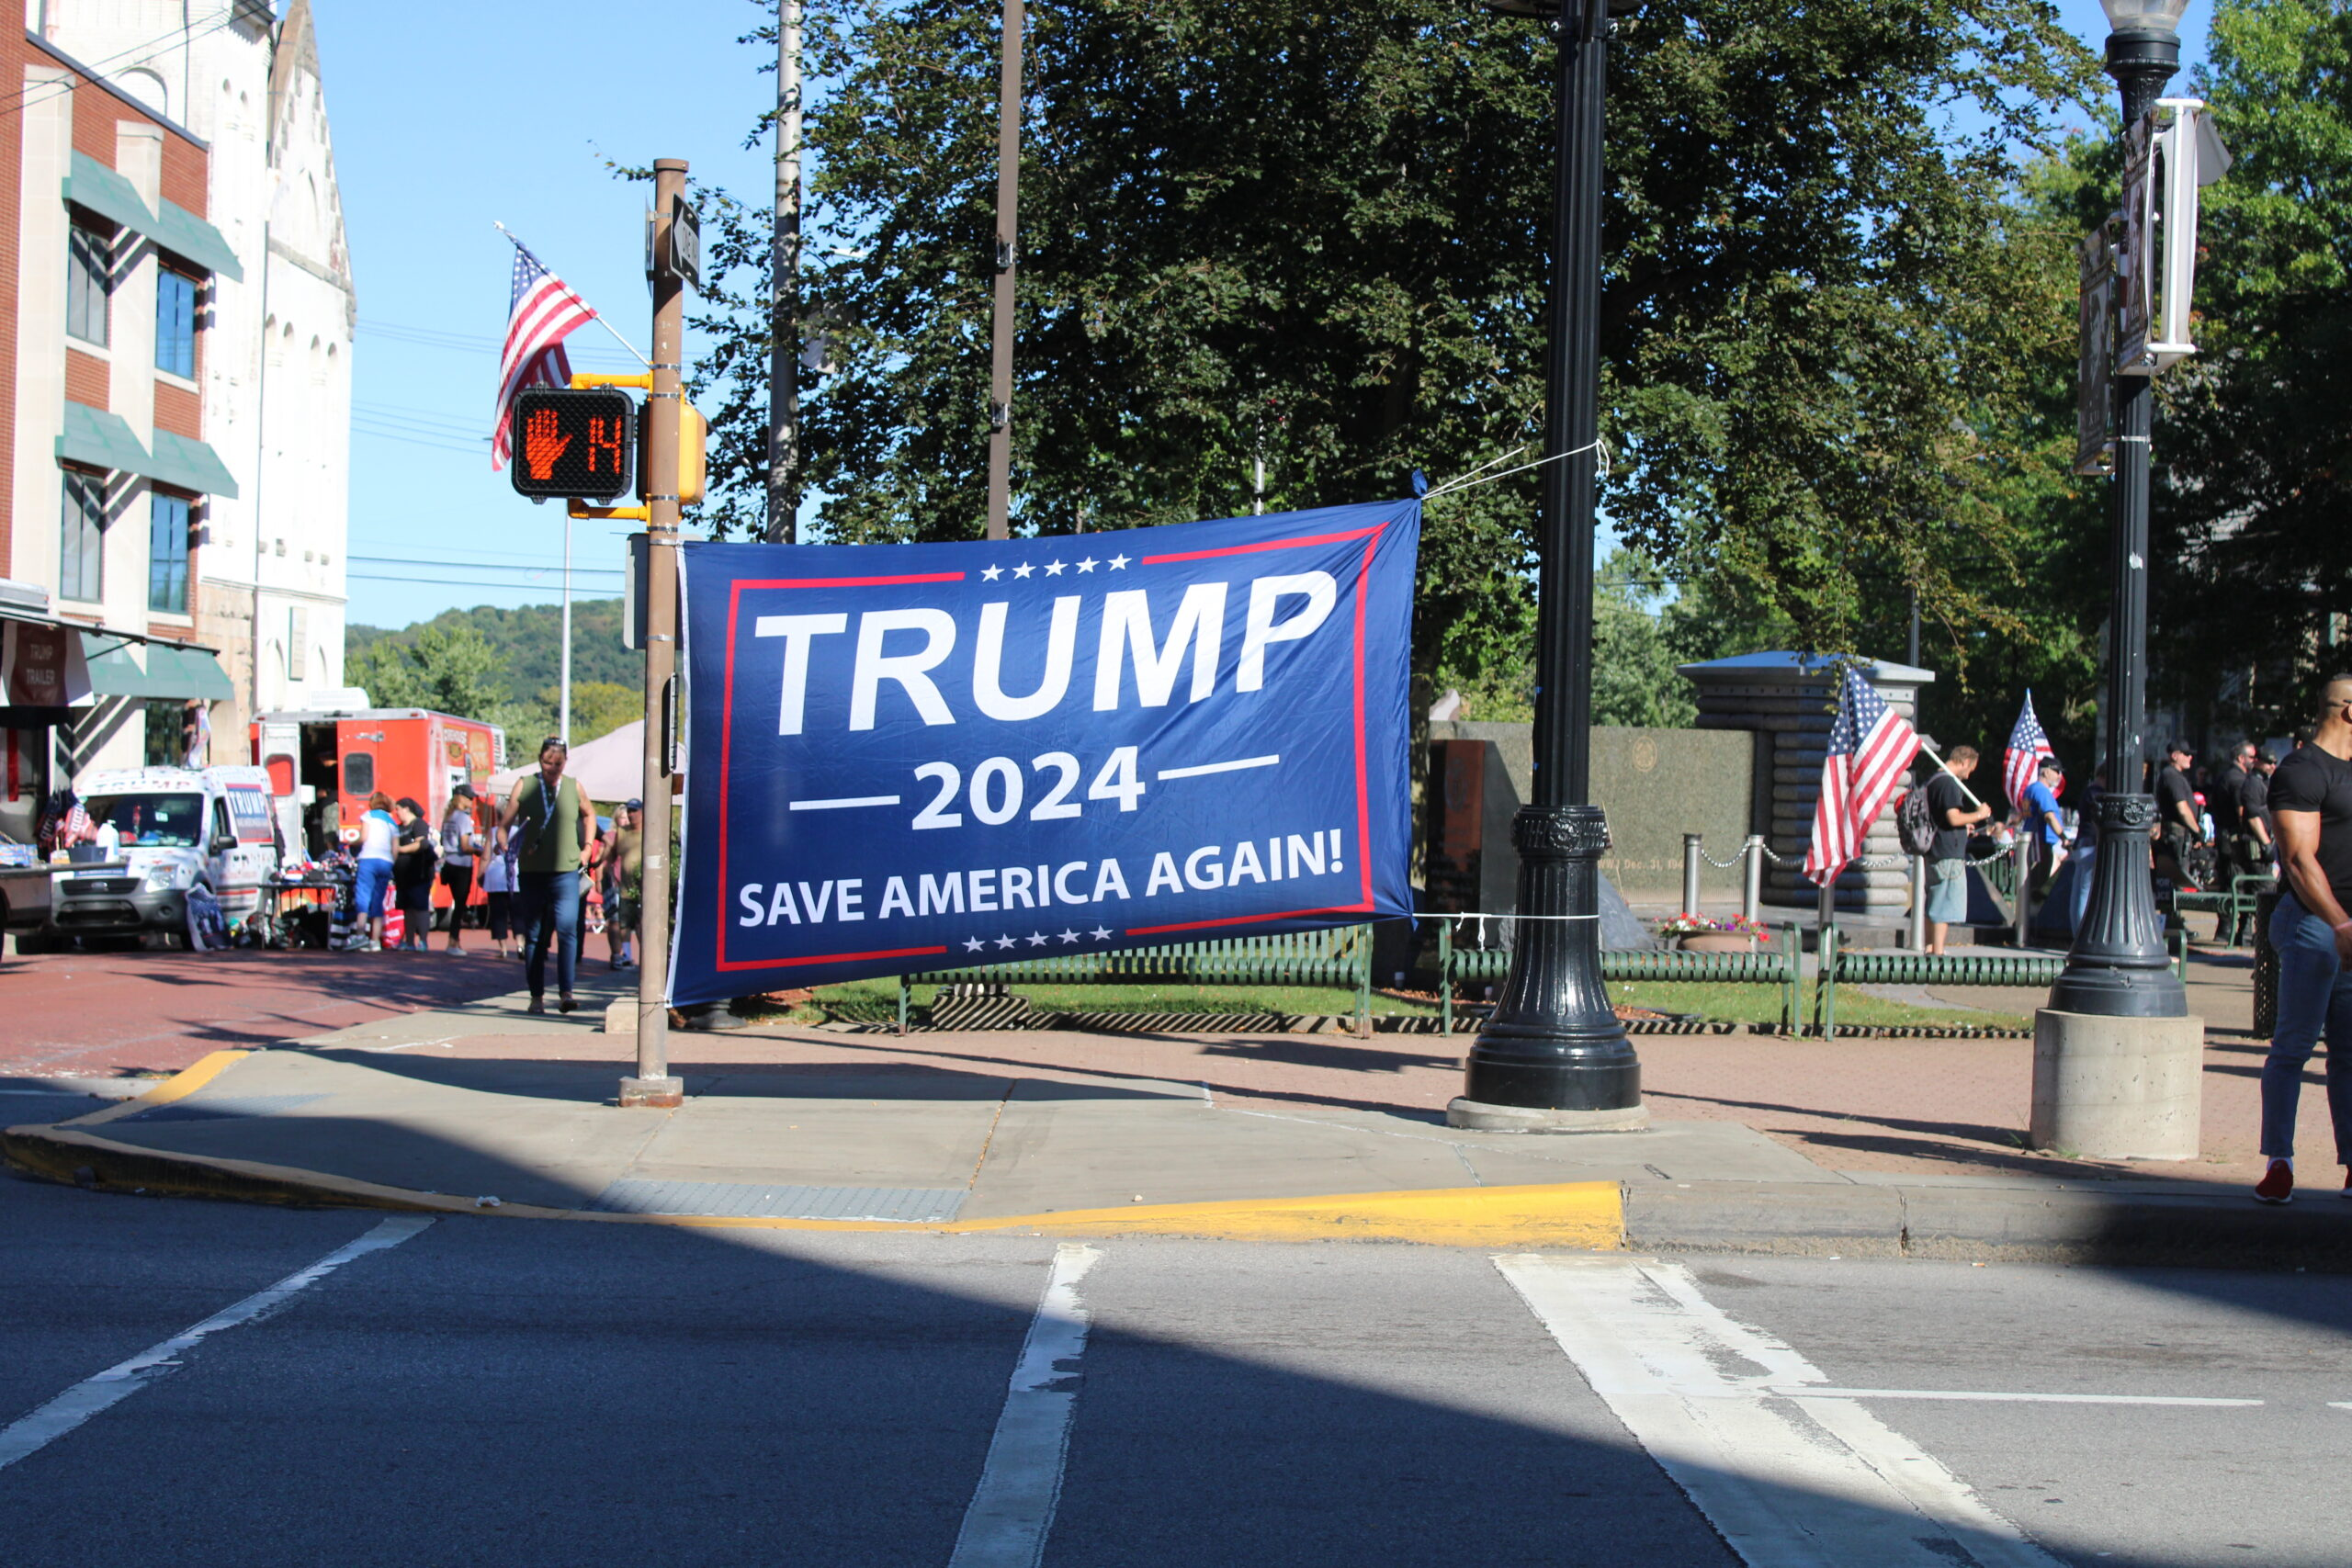 The America First Rally in Butler, PA 6